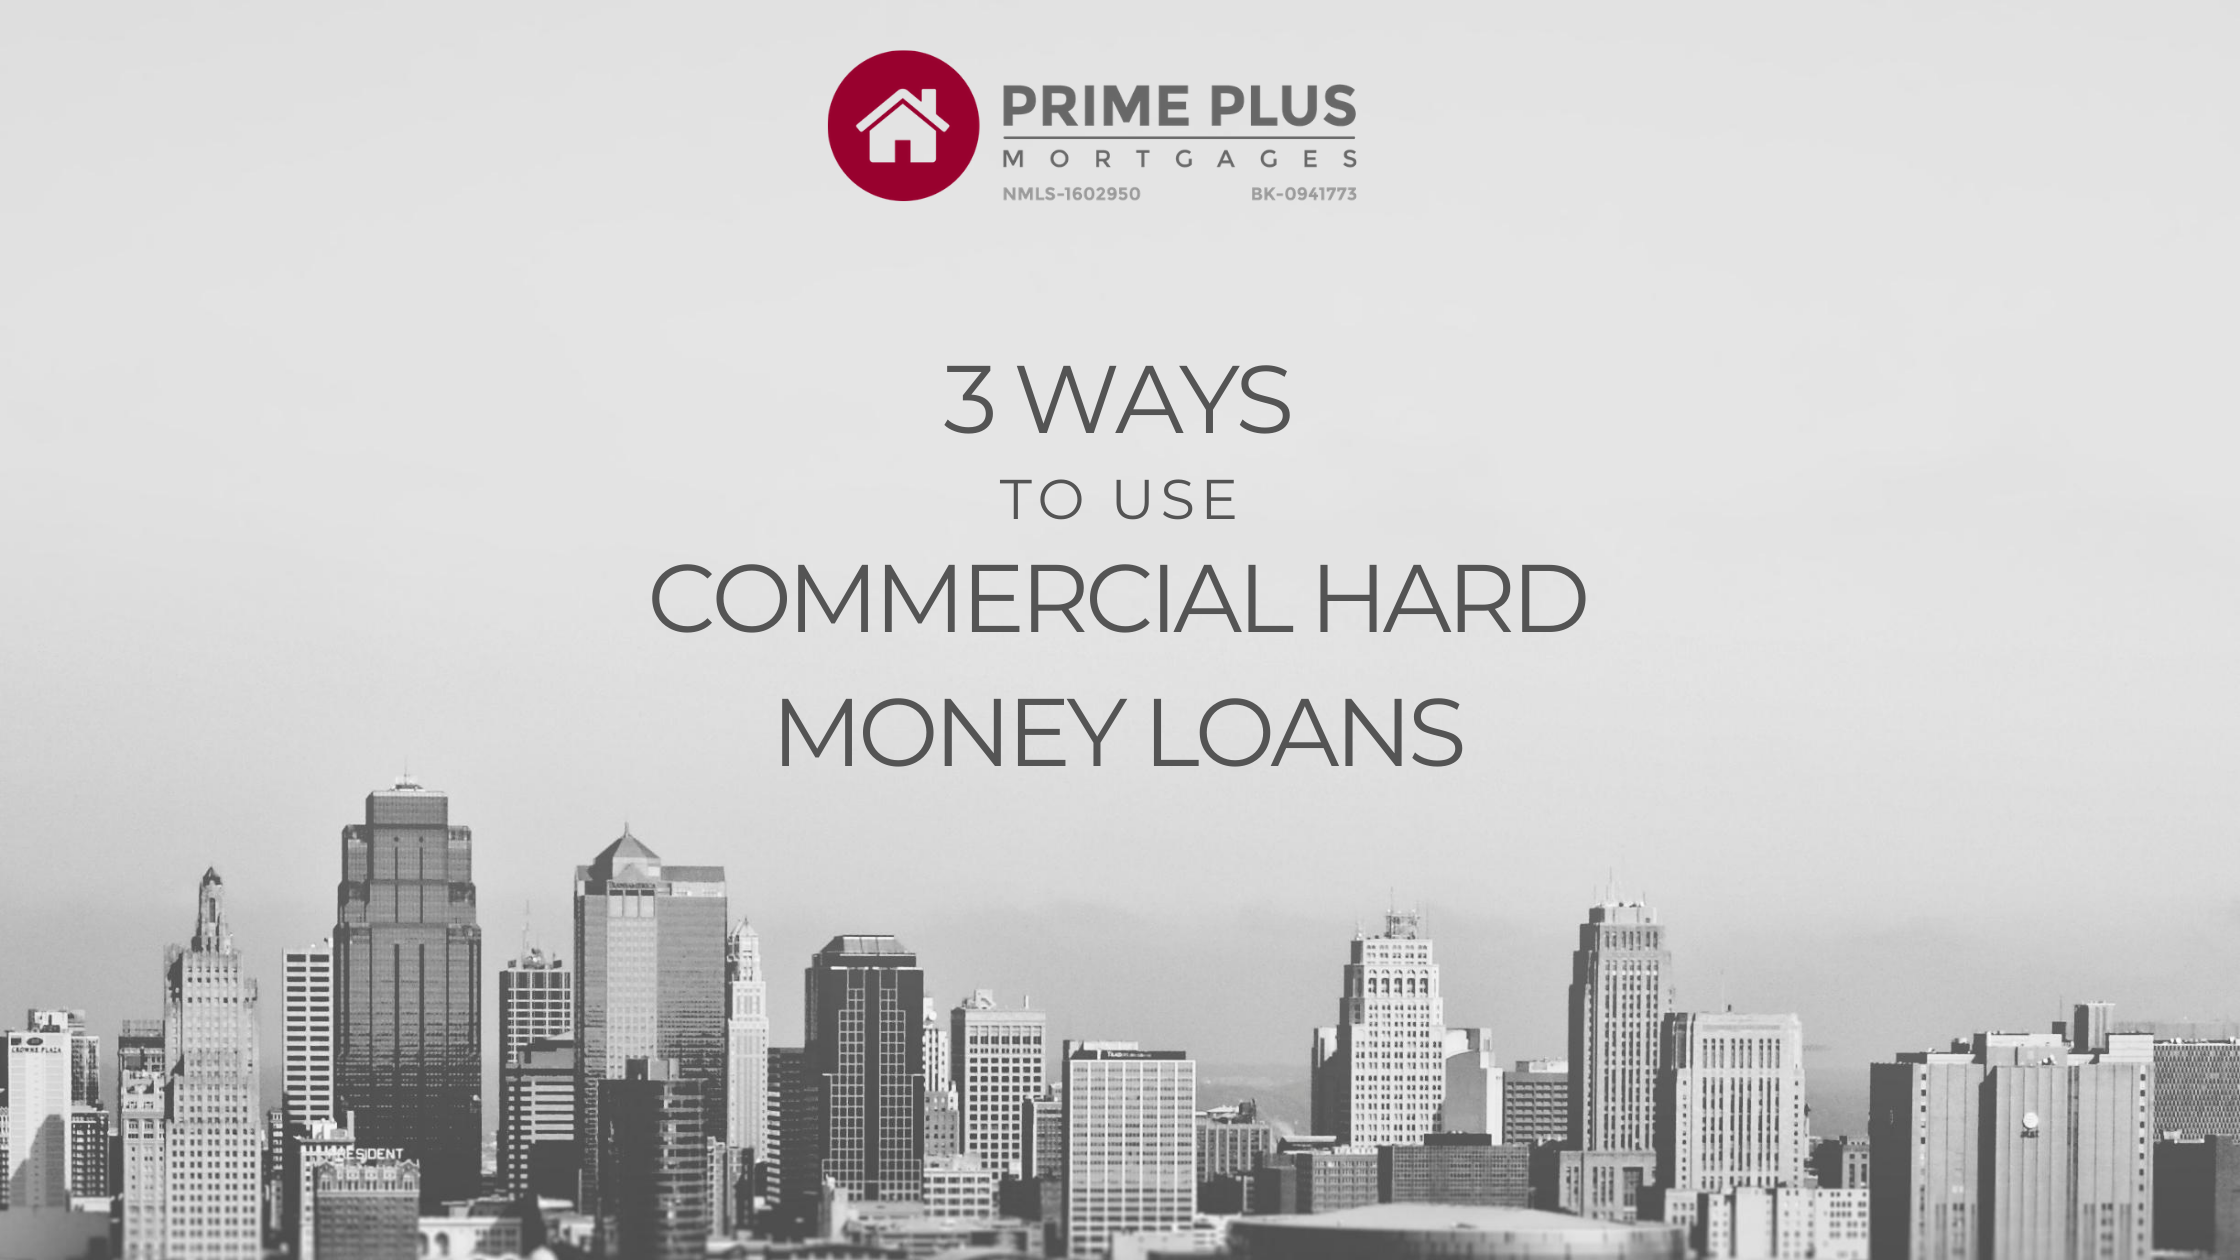 3 Ways To Use Commercial Hard Money Loans